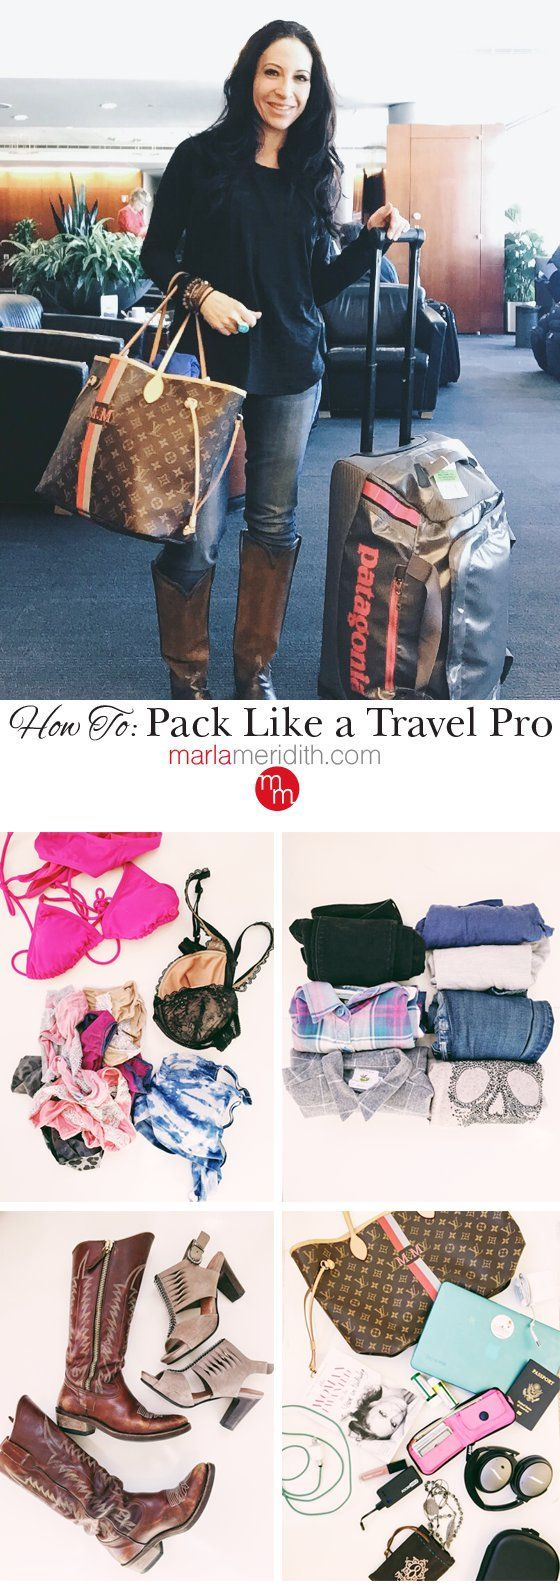 How to Pack Like a Travel Pro! I travel the world often for work & play. Here's all you need to know from an expert! MarlaMeridith.com ( @marlameridith )